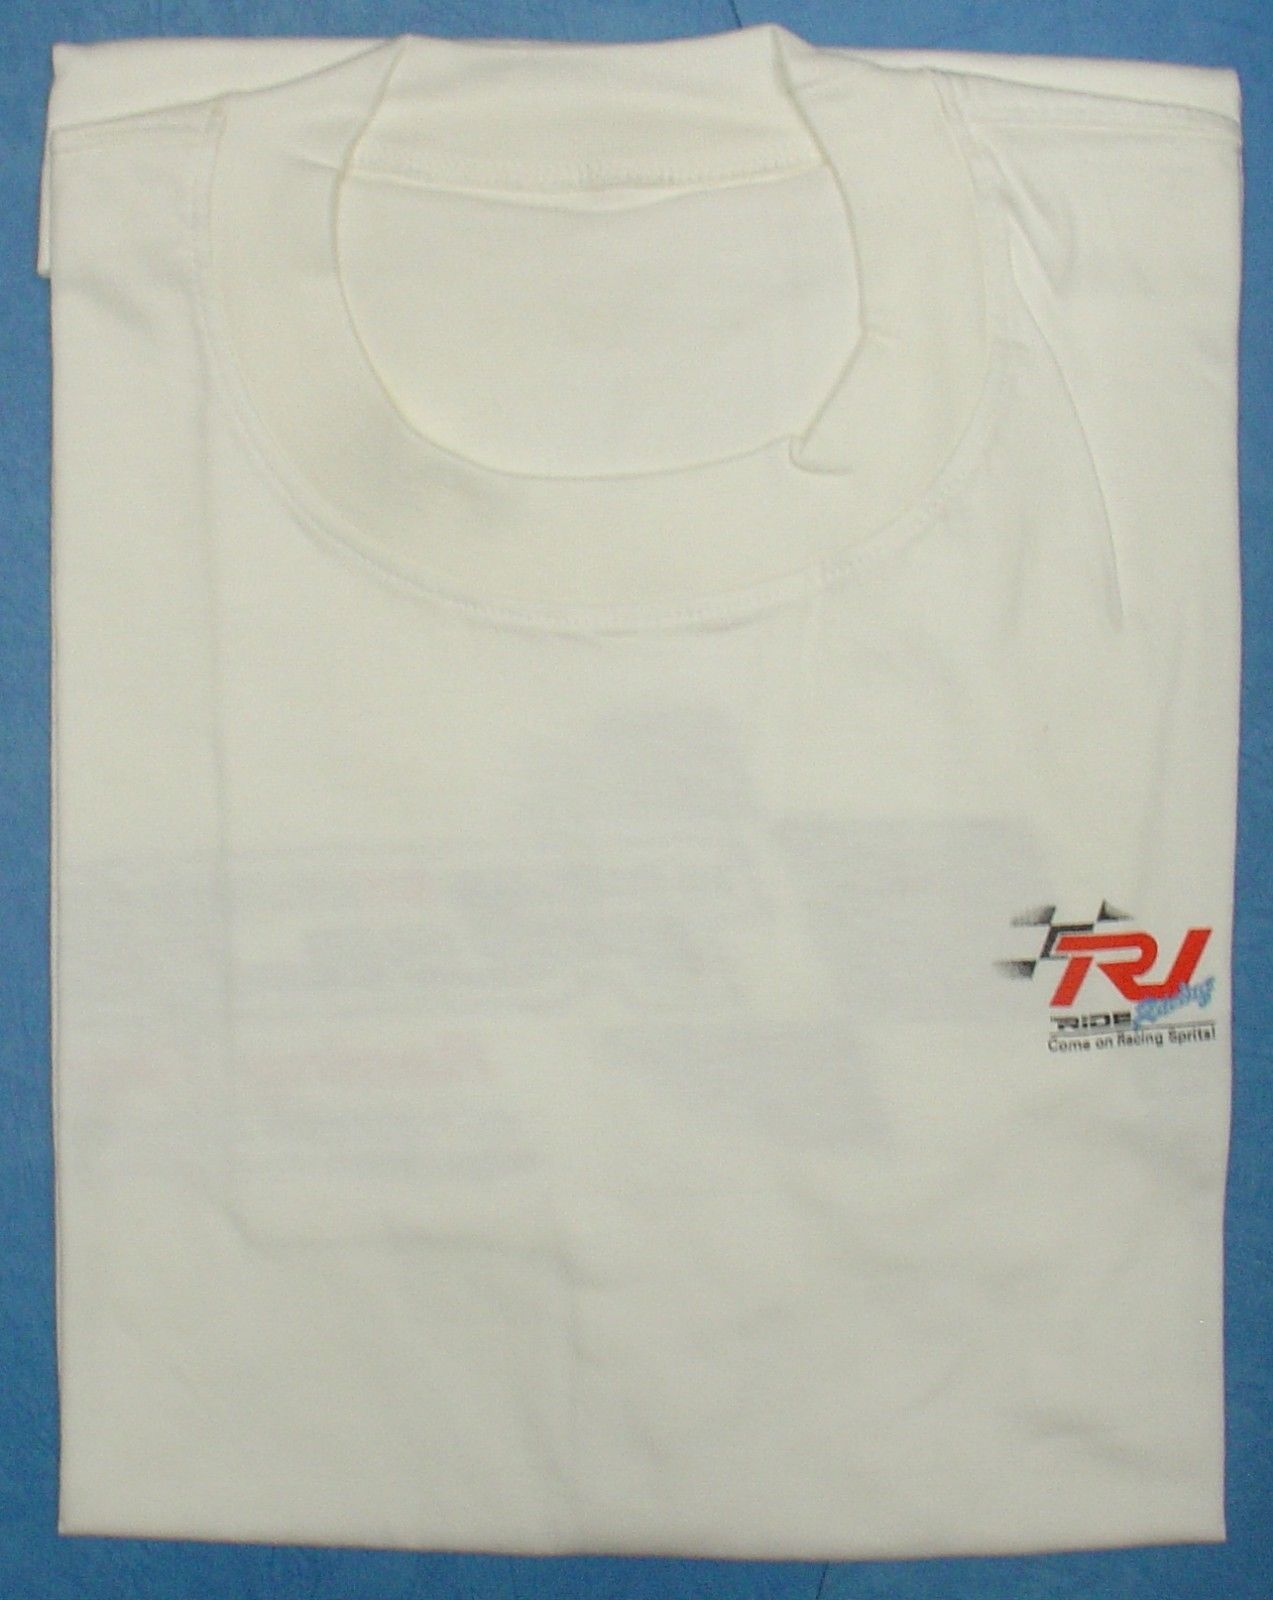 Ride RP-901 - Ride Racing Team T-Shirt White, L